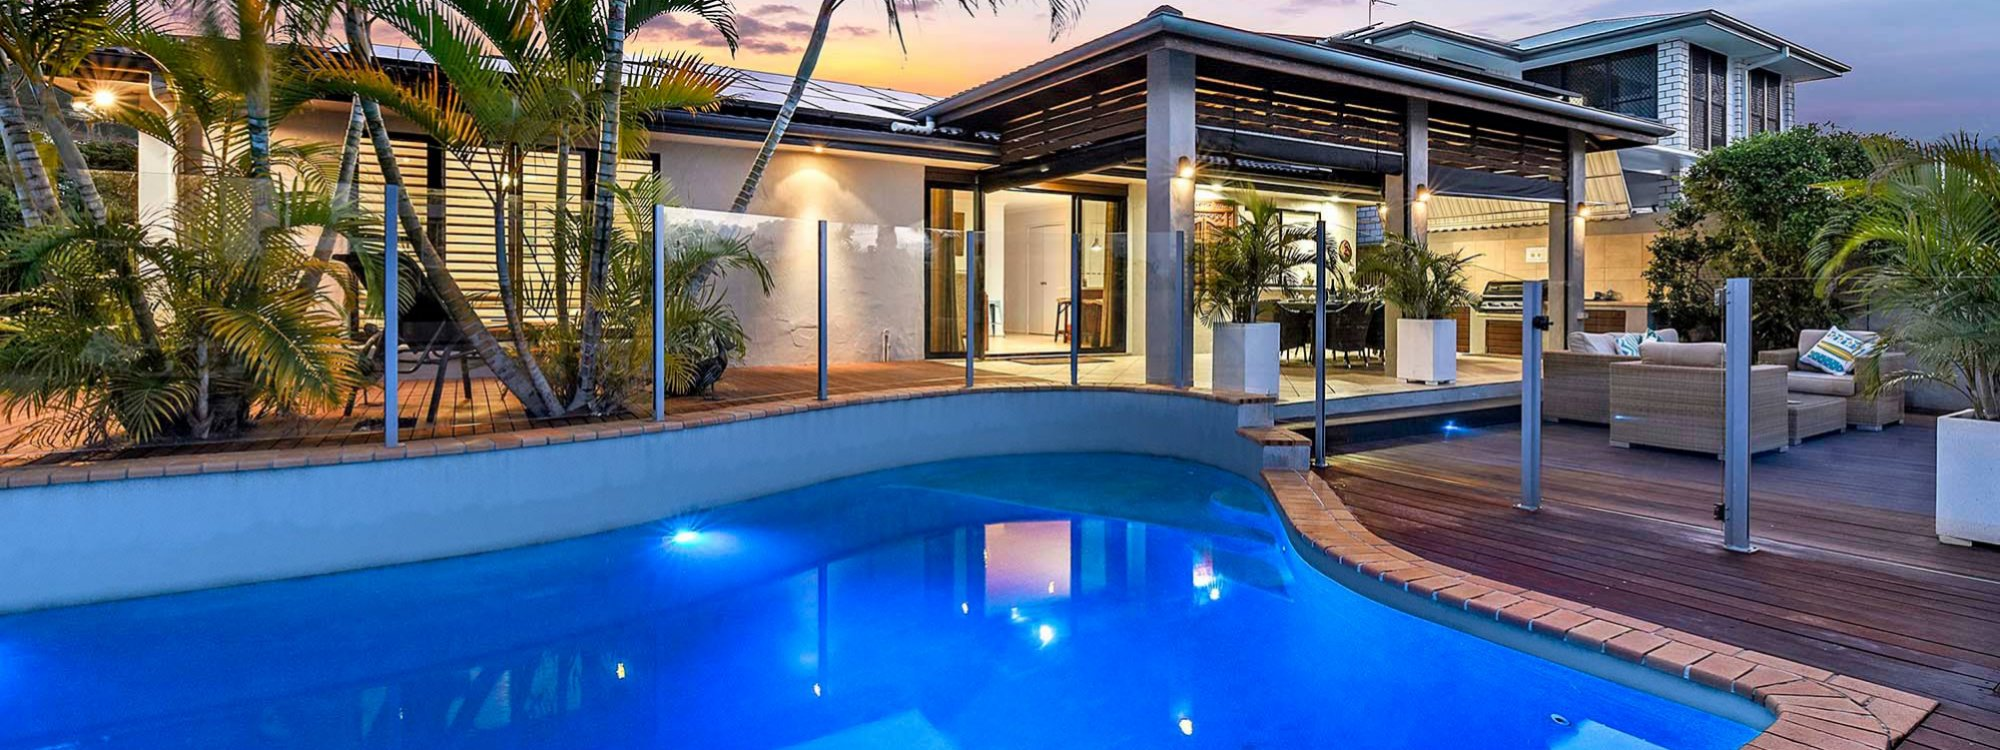 La Vida - Broadbeach Waters - Sunset View of Pool and Back of House